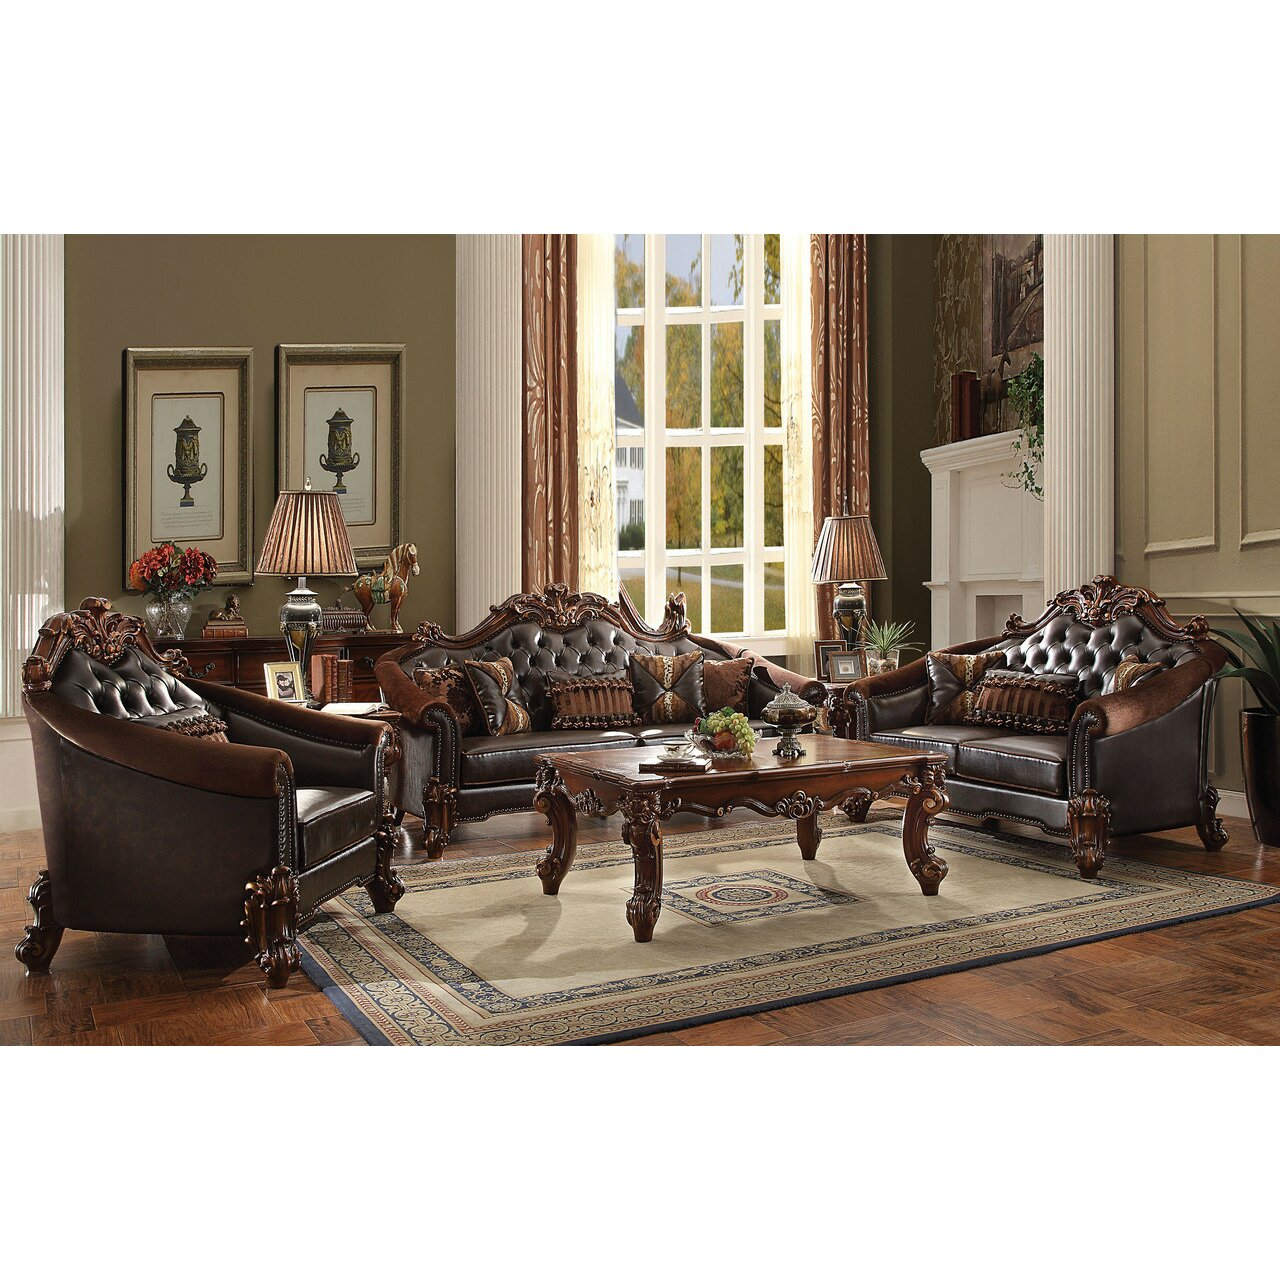 A j homes studio lee 3 piece living room set wayfair for 3 piece living room set